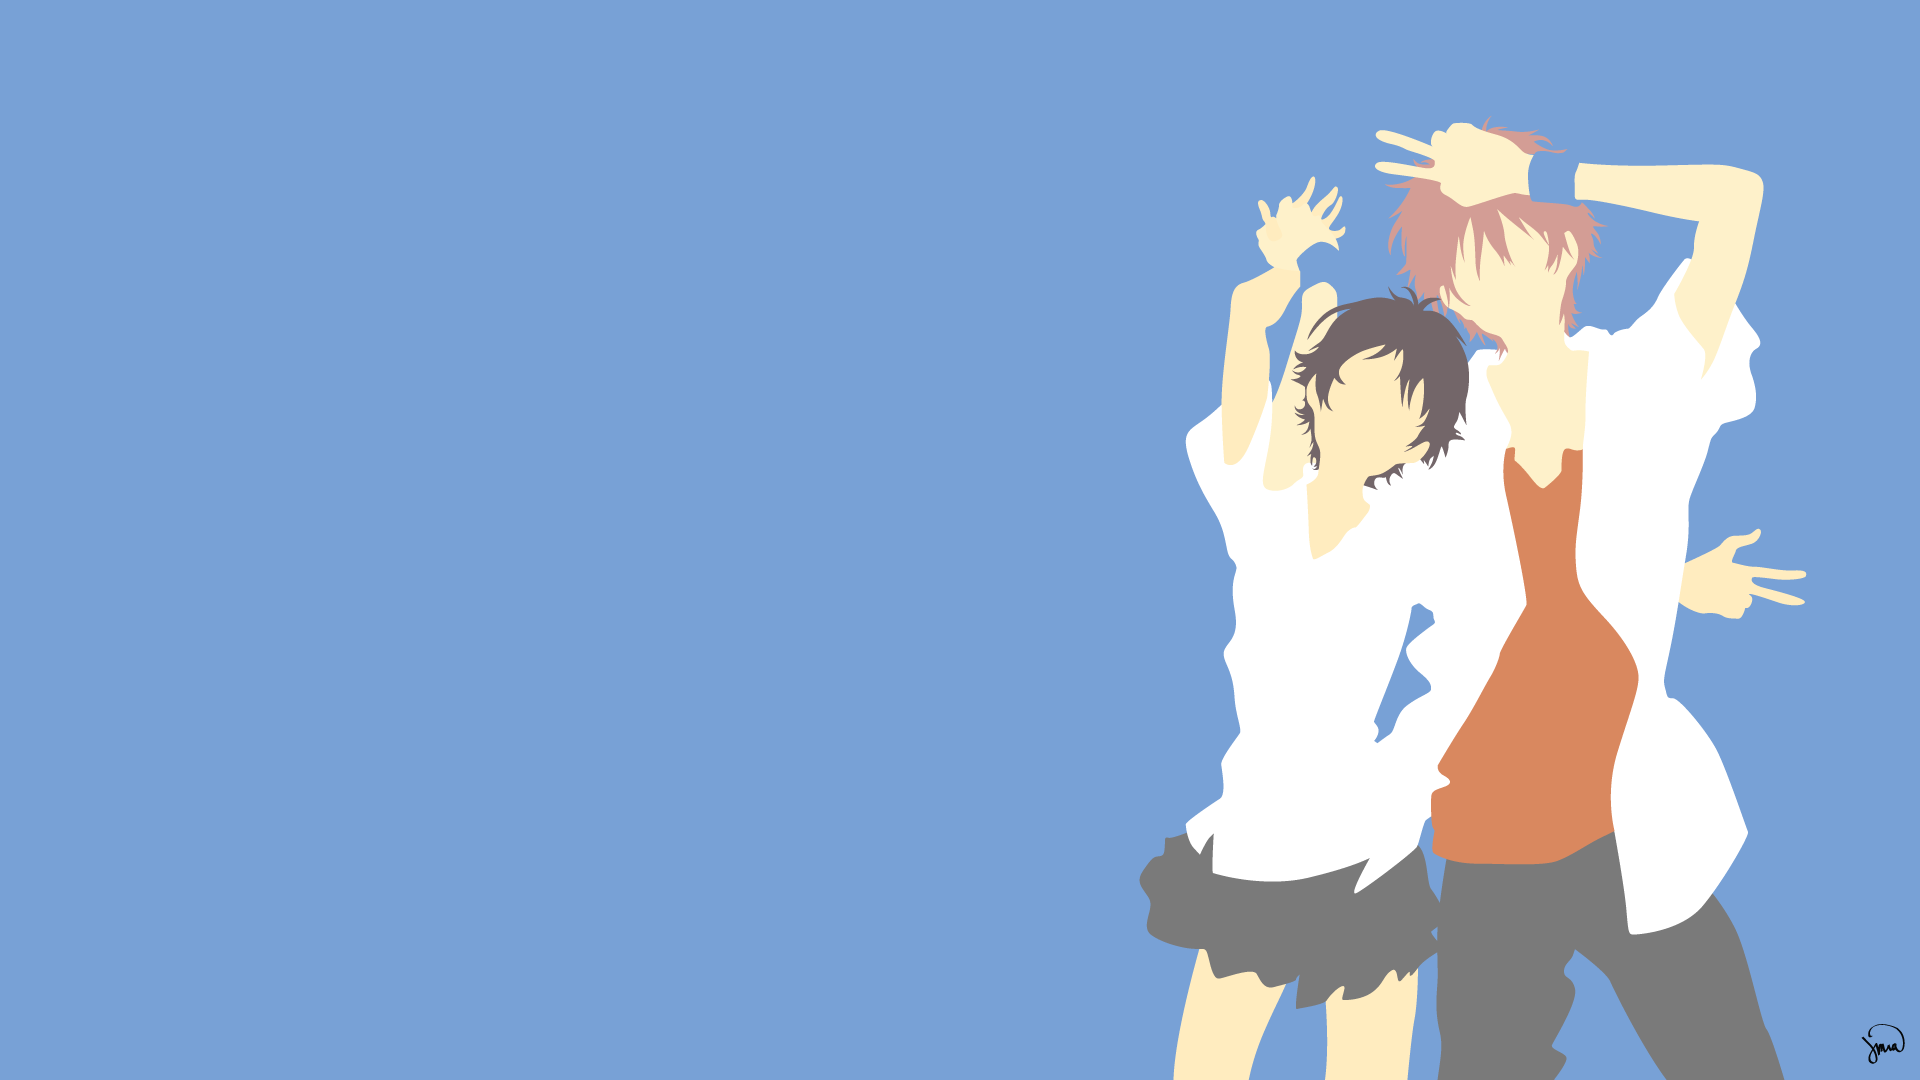 The Girl Who Leapt Through Time Minimalism